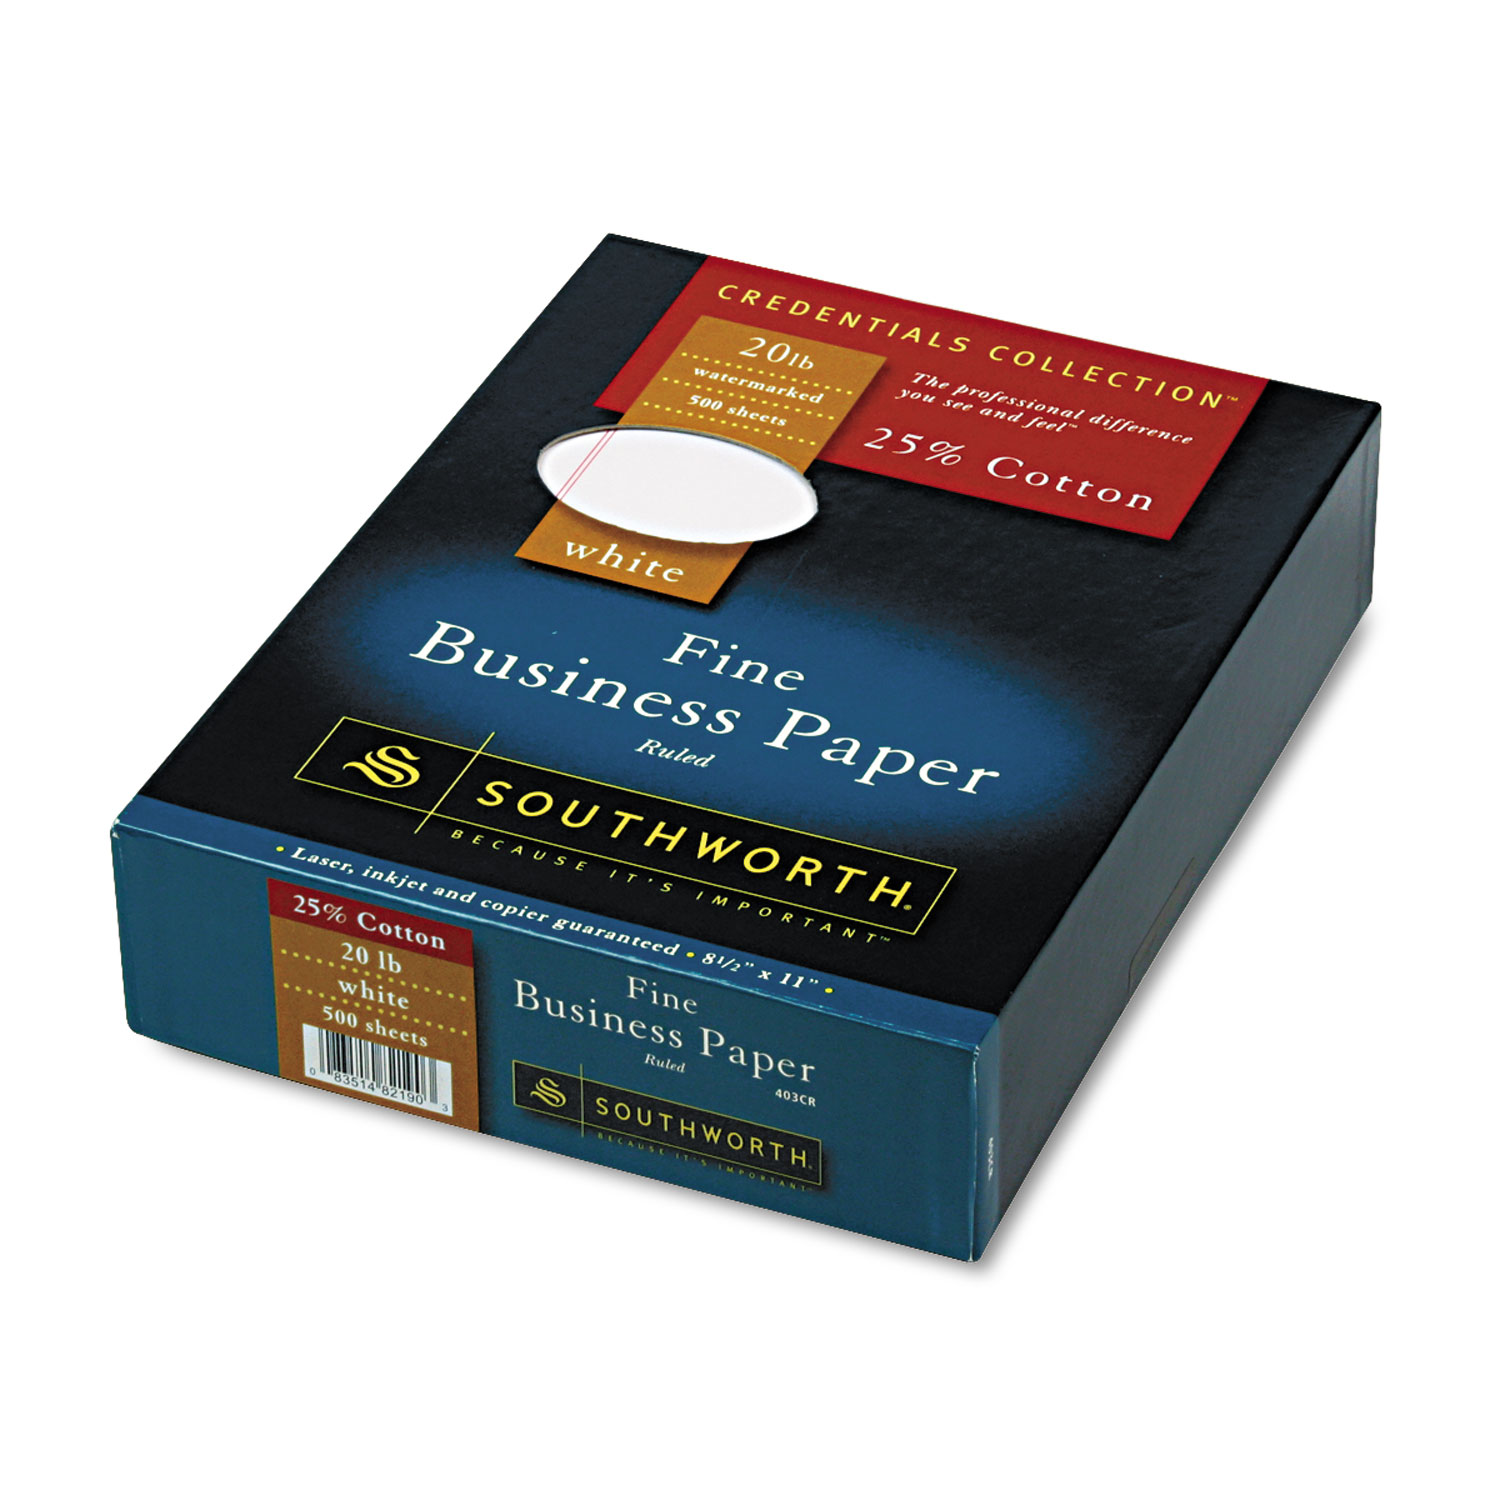 25% Cotton Business Paper, 20lb, 95 Bright, Wide Rule, 8 1/2 x 11, 500 Sheets